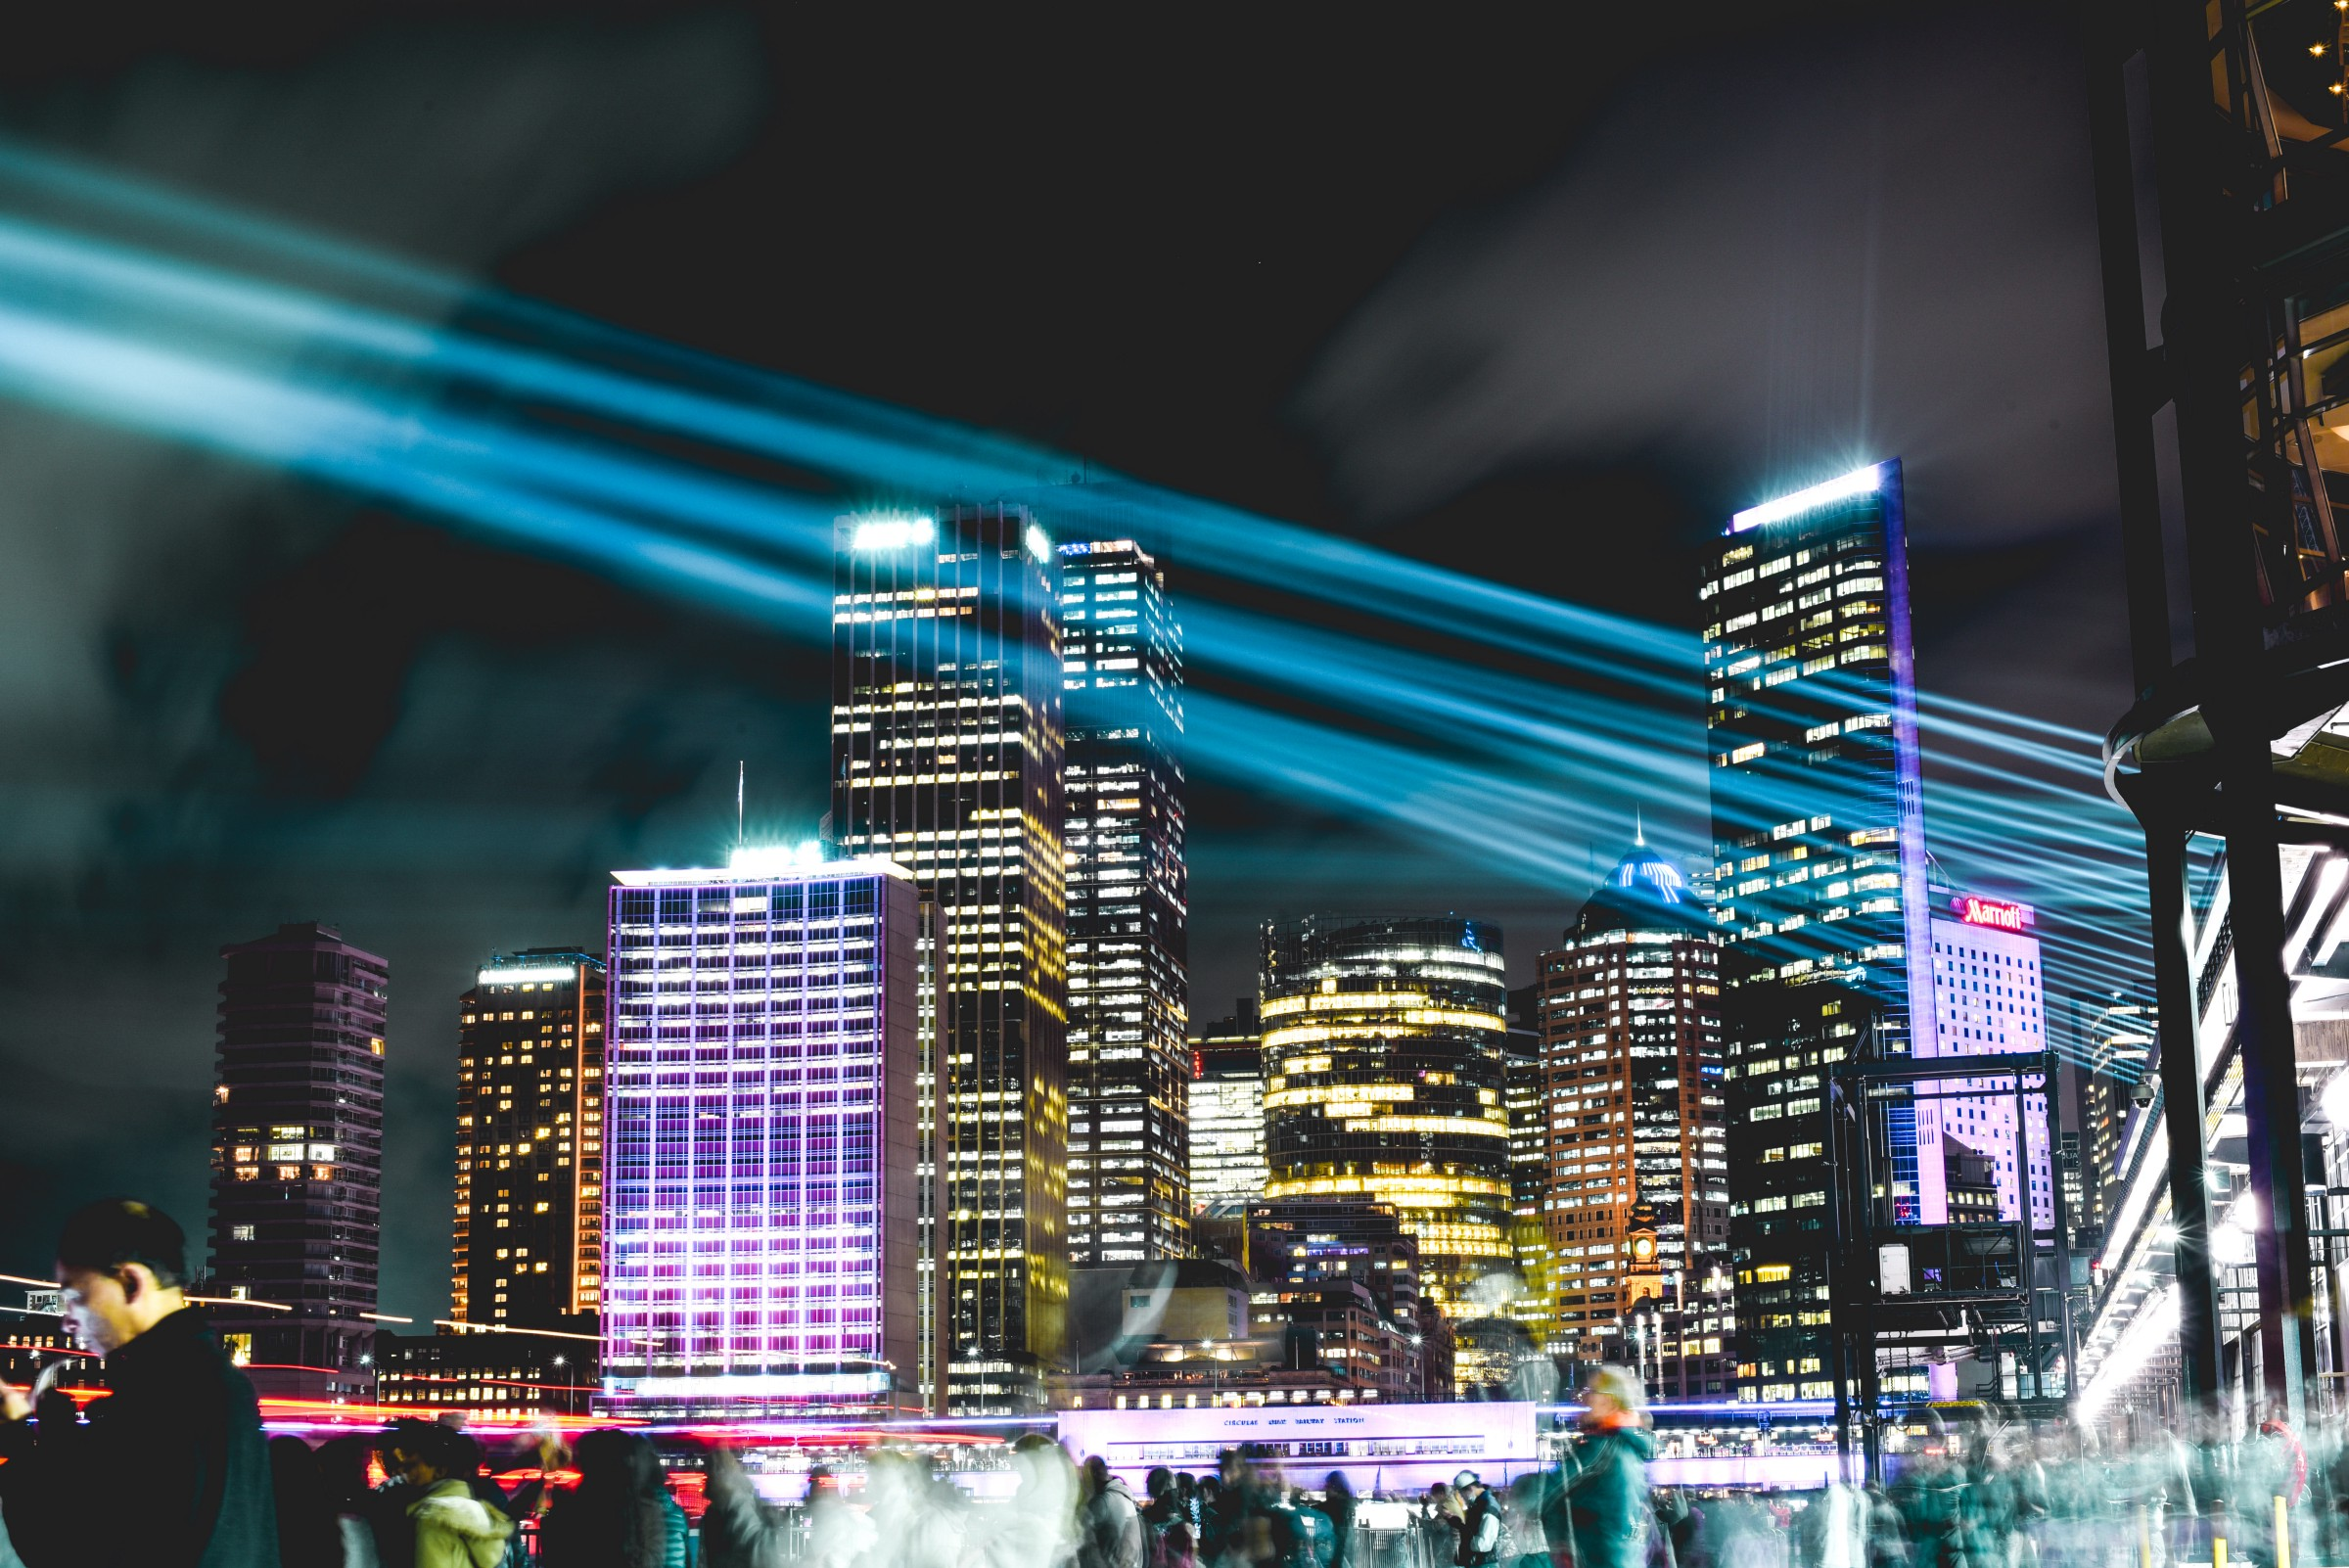 /the-proliferation-of-smart-cities-f567093eba49 feature image